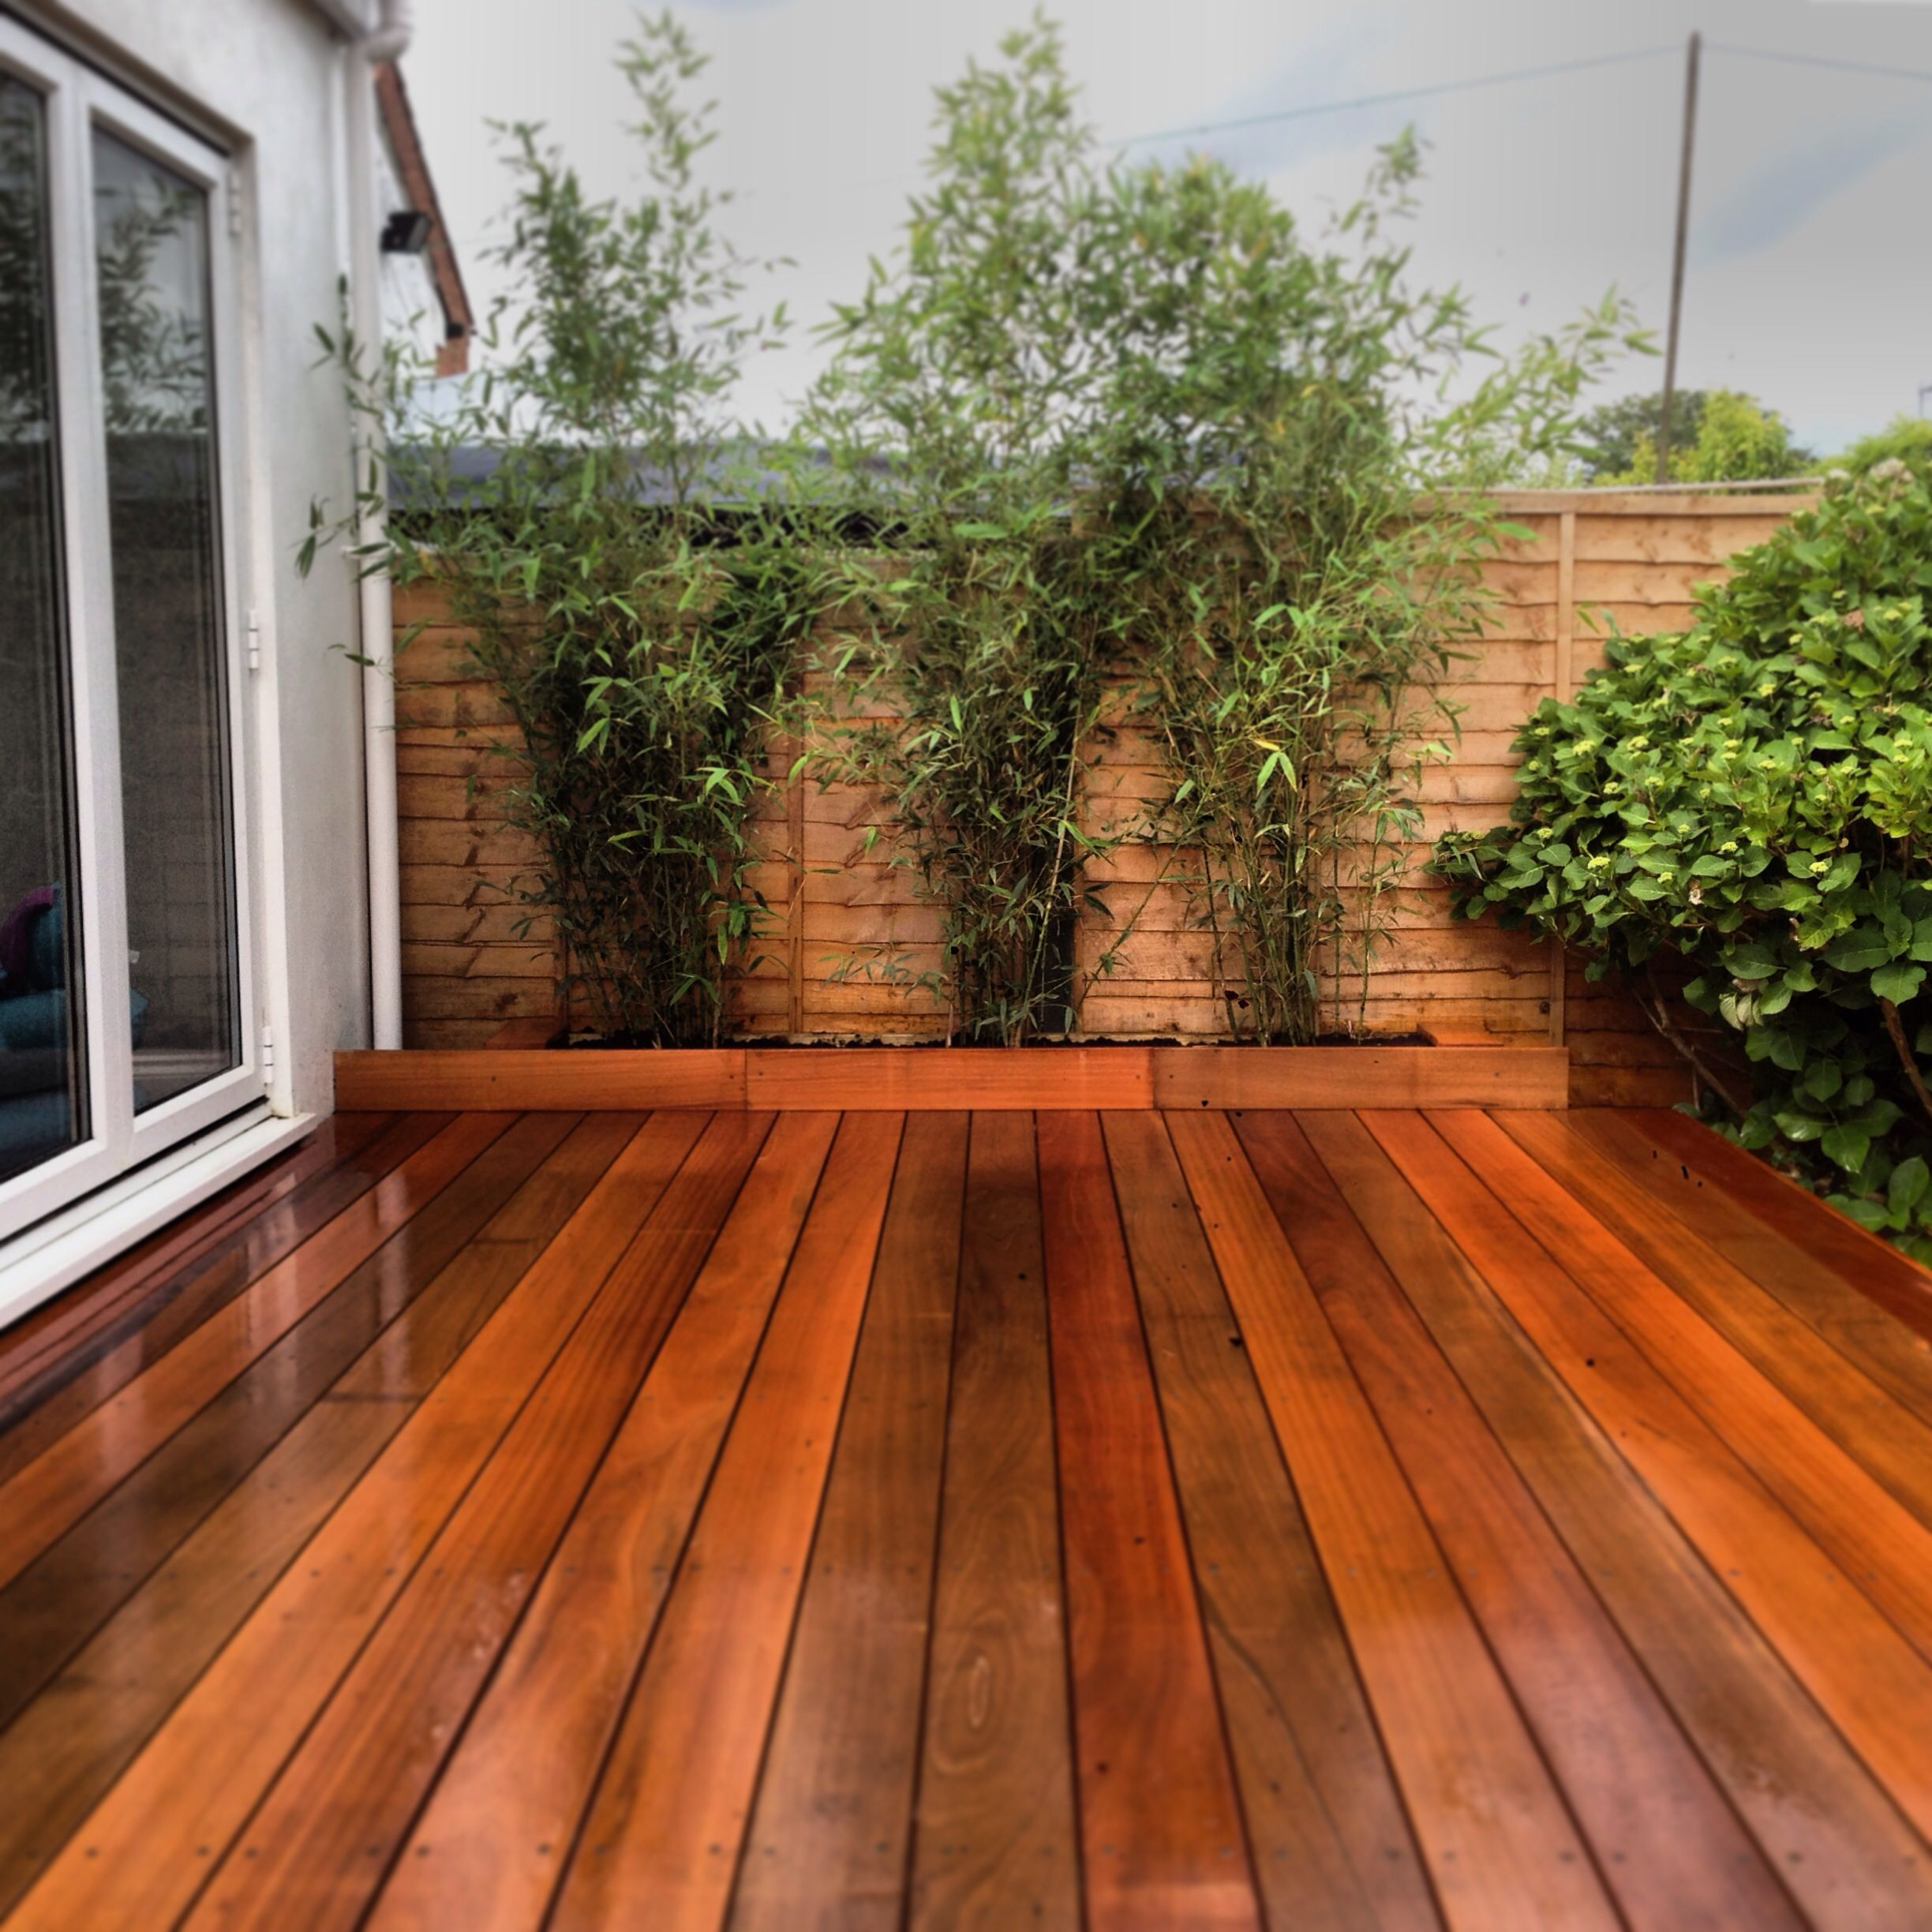 New hardwood decking and bamboo | deck y pergolas | Pinterest ...